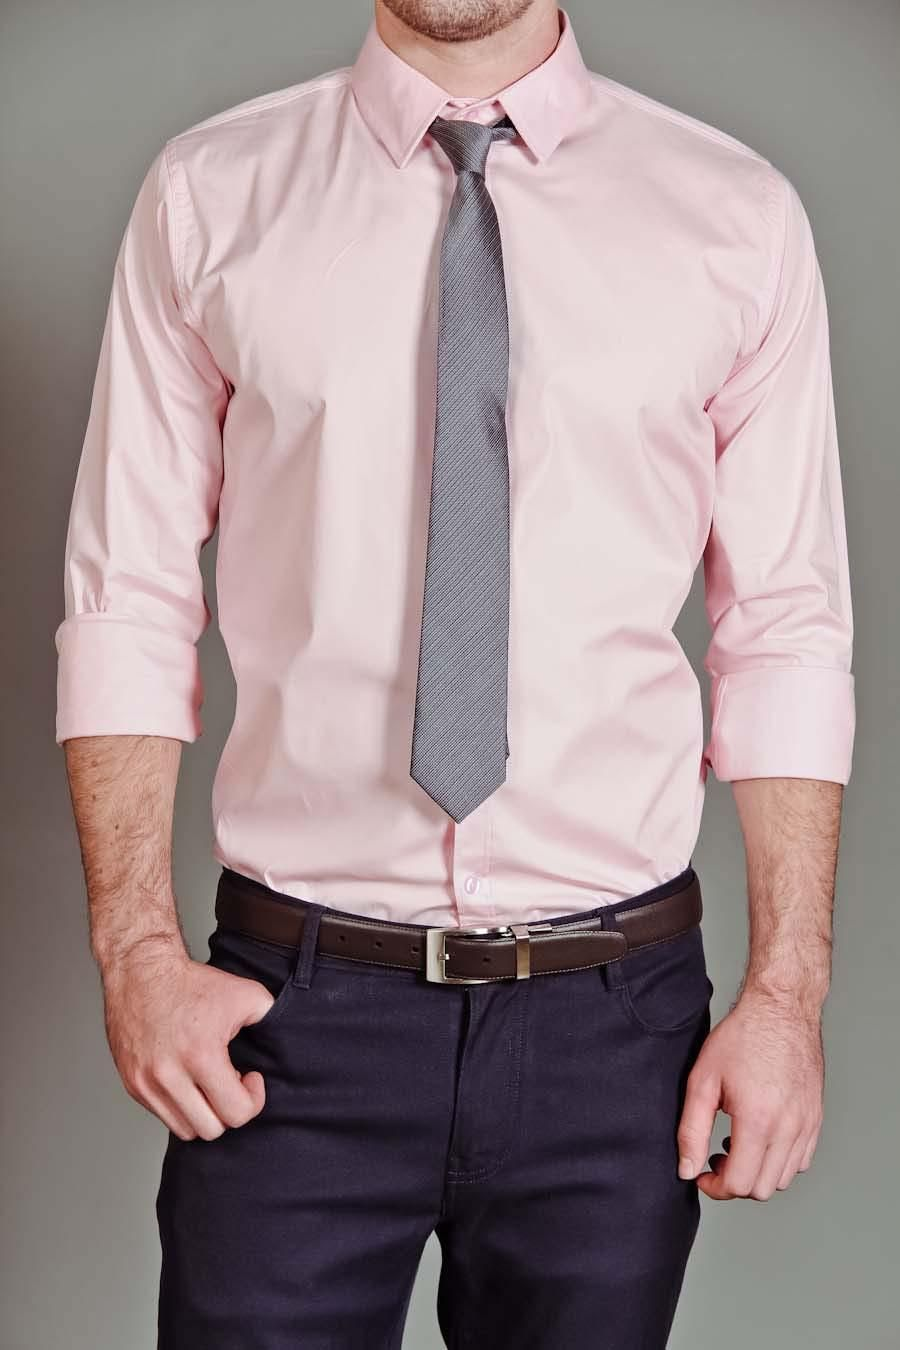 c1da73d62860 Button Up Light Pink Shirt. | Men's Corner